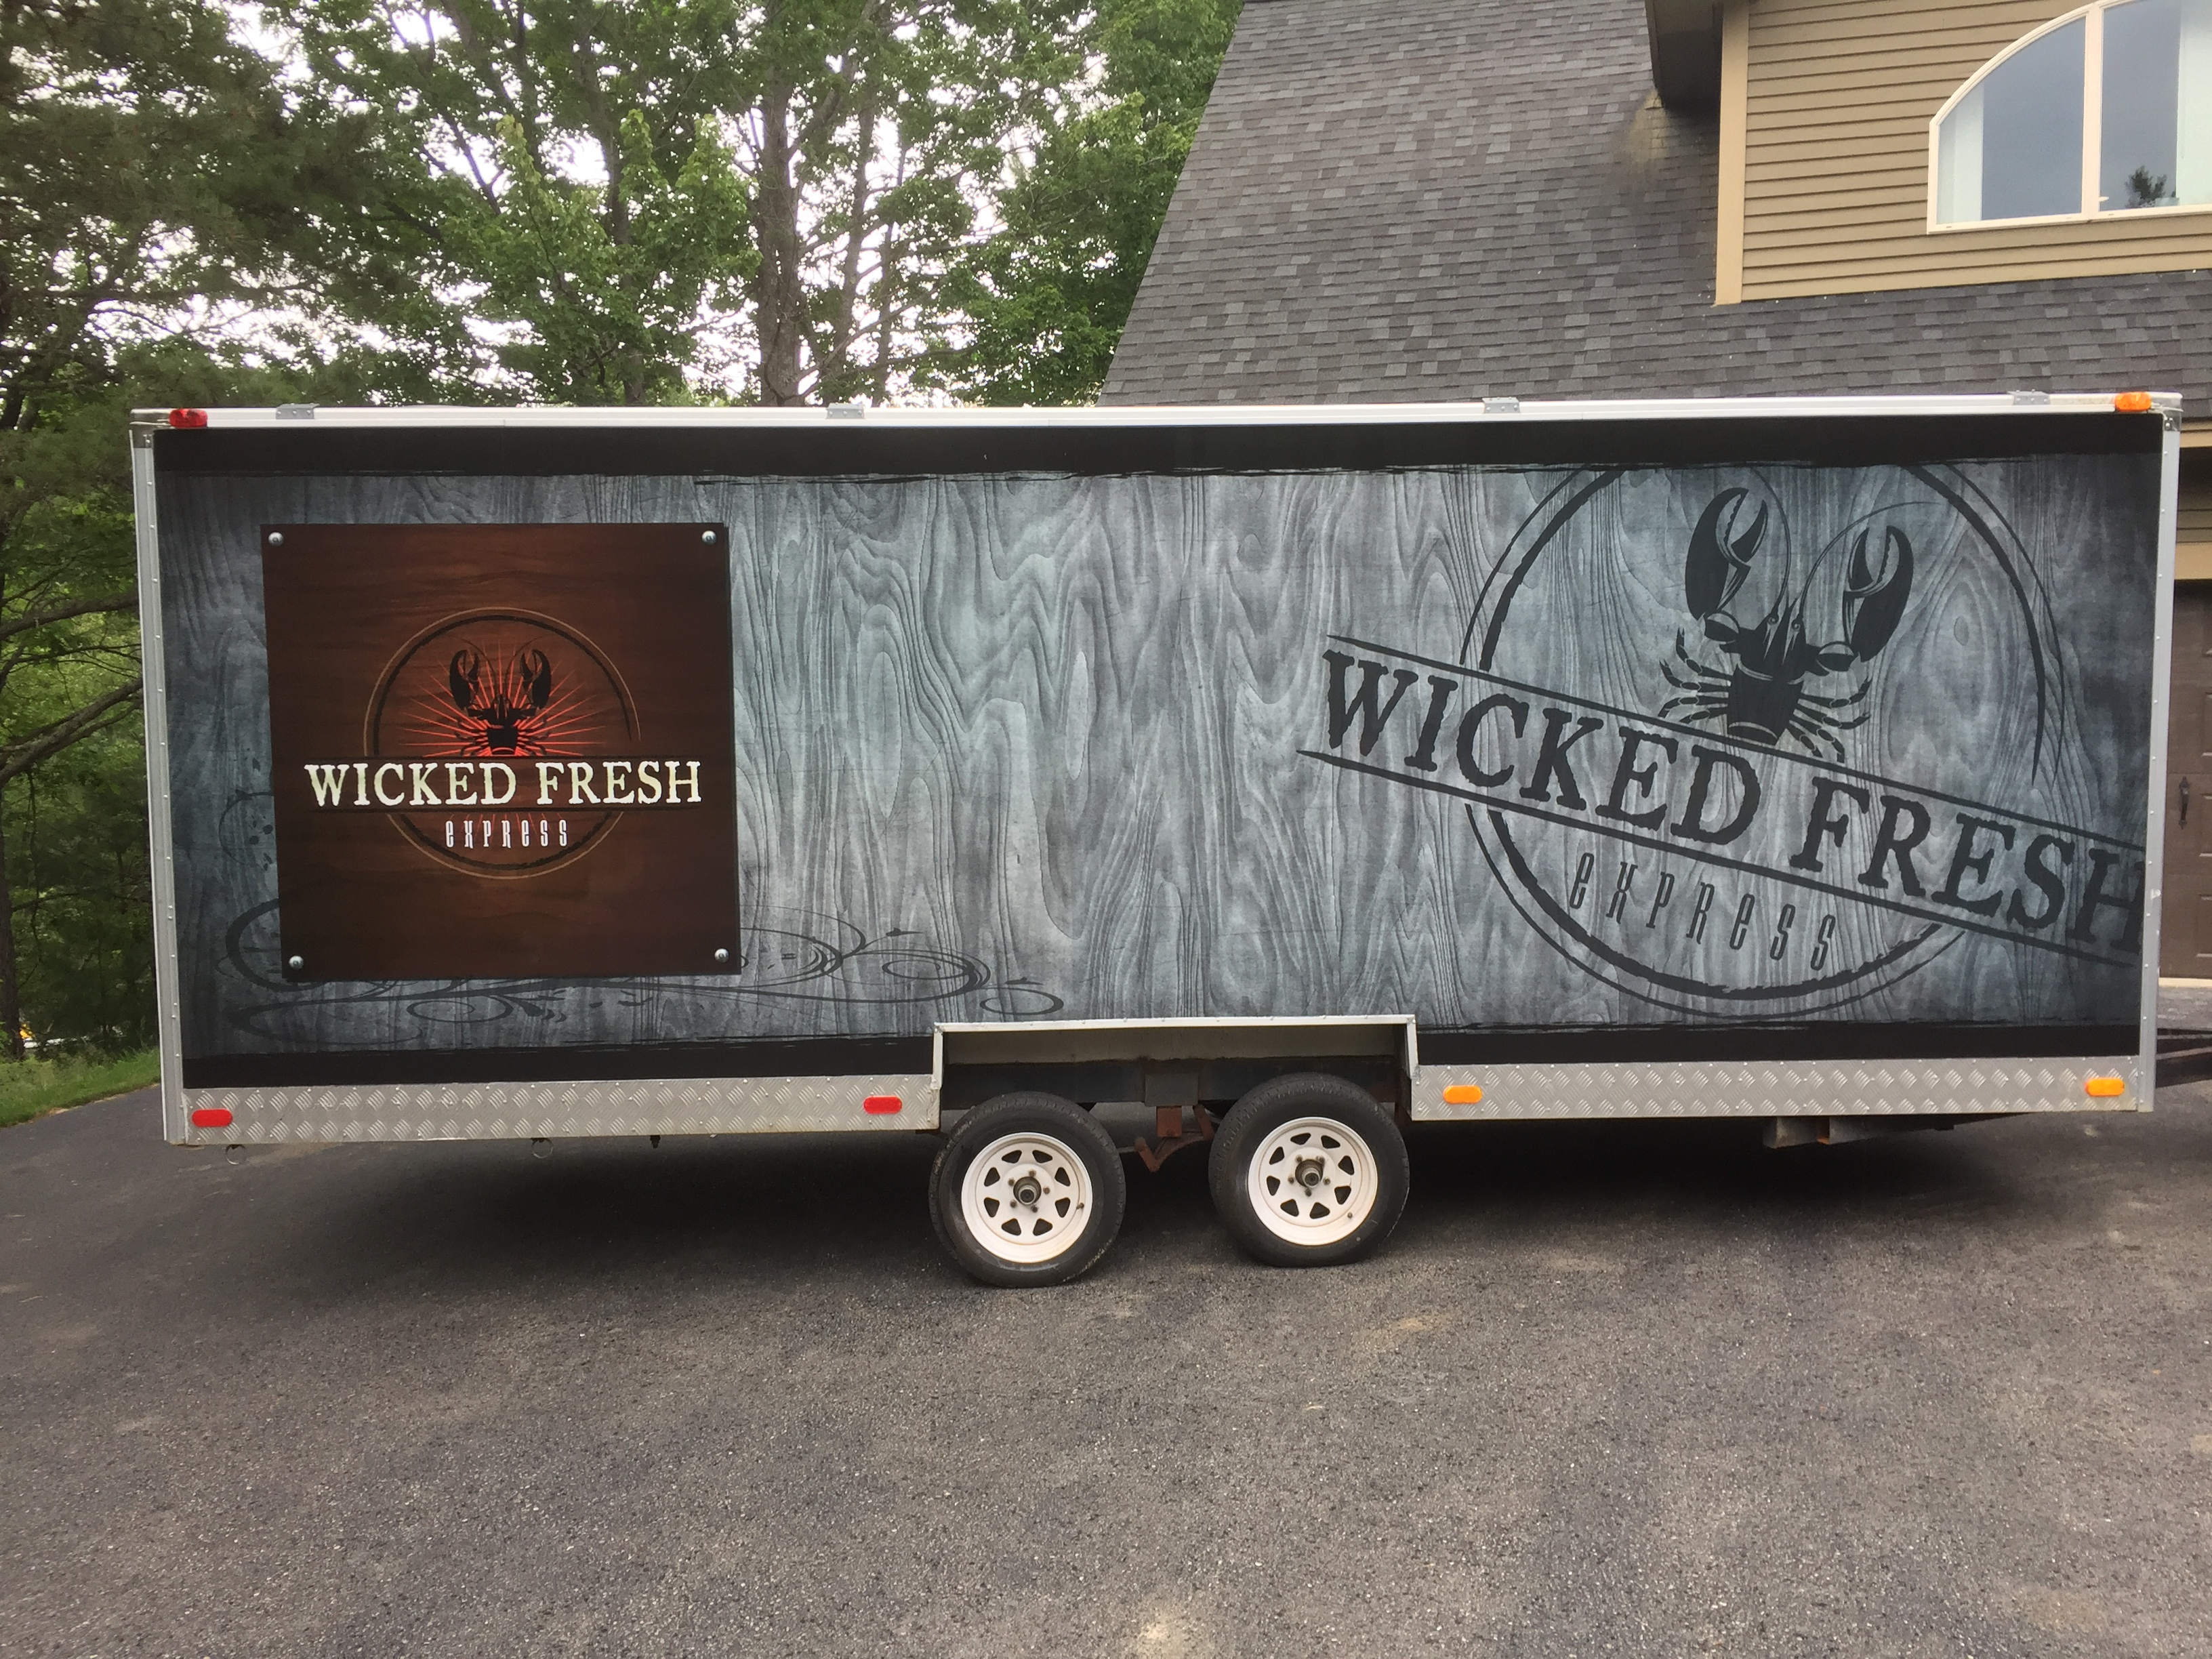 Wicked Fresh Express